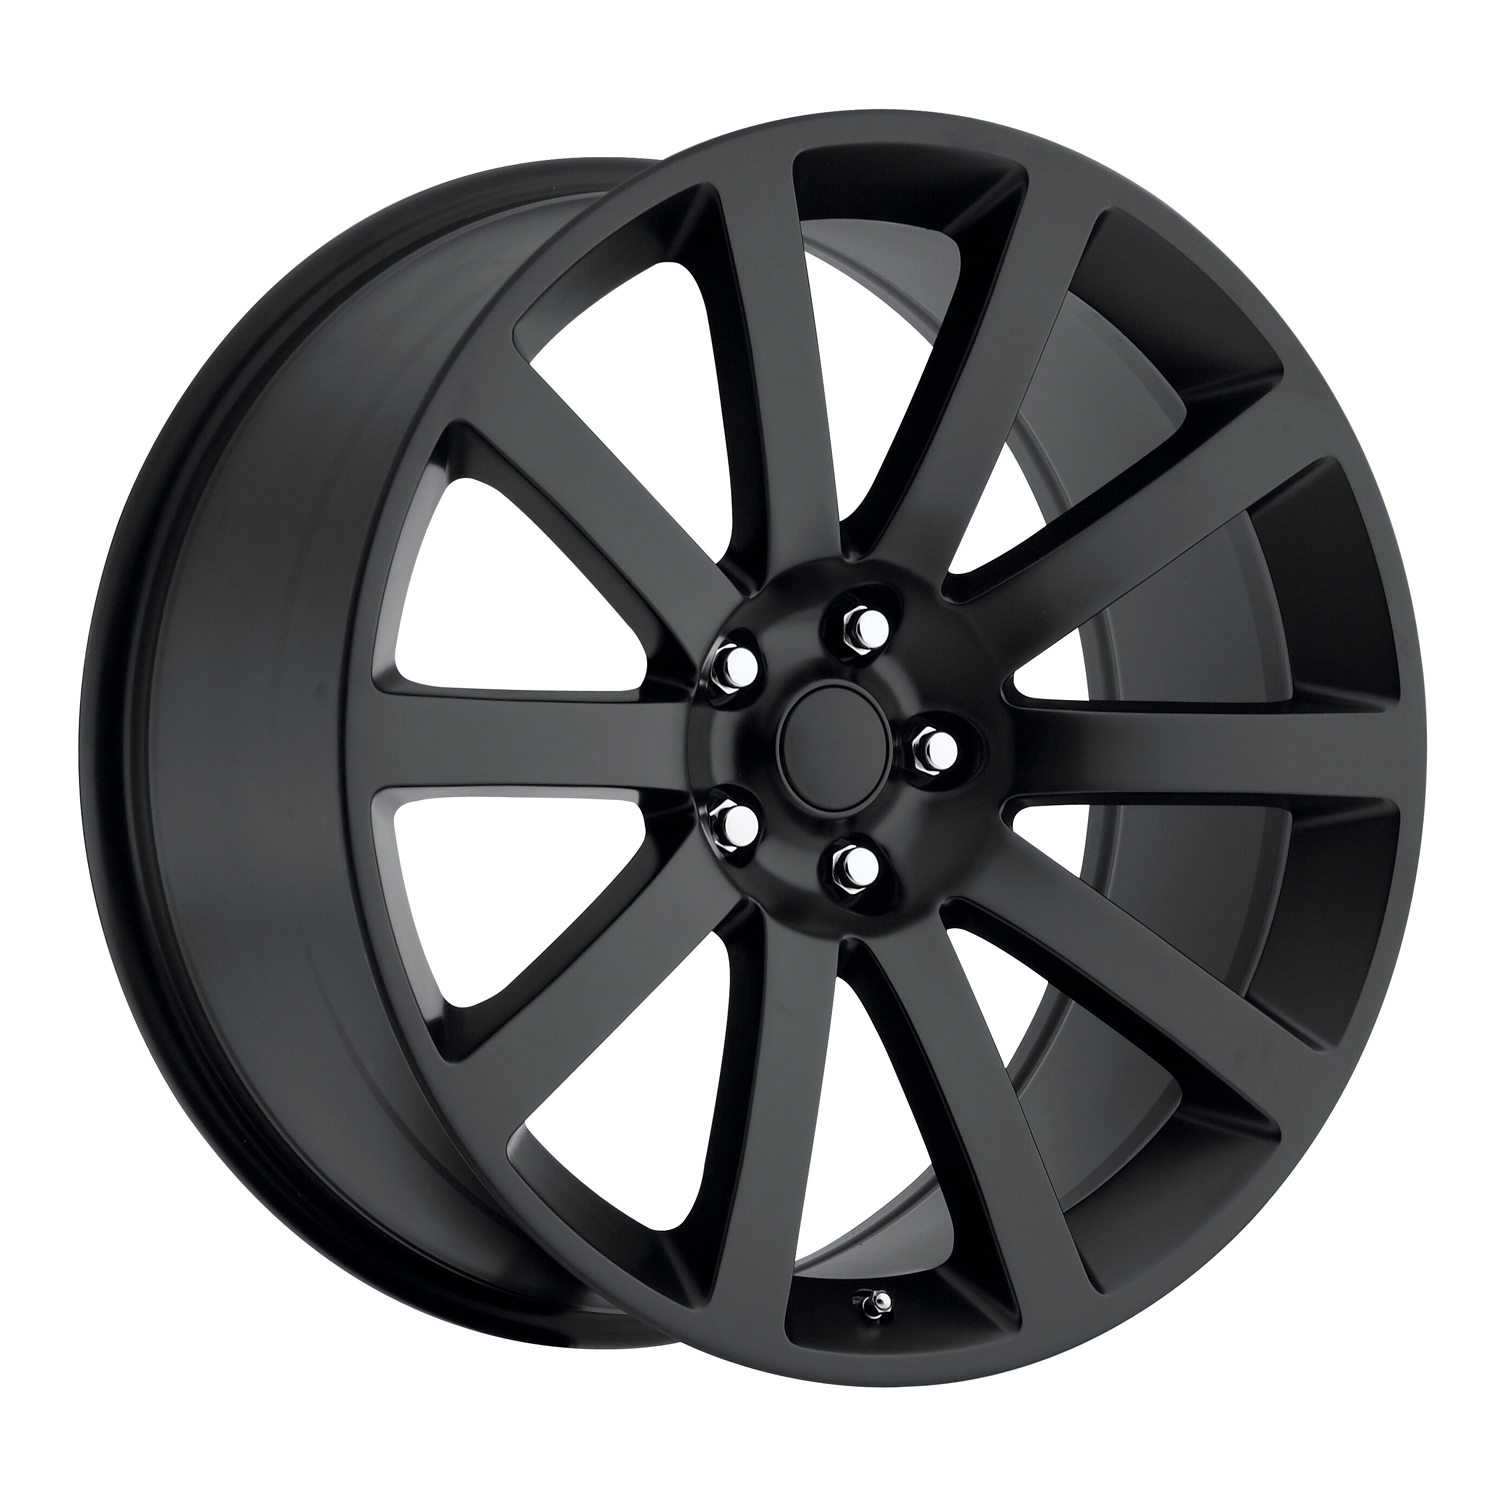 Chrysler 300C 2005-2010 22x9 5x115 +18 - SRT8 Style Wheel - Satin Black With Cap